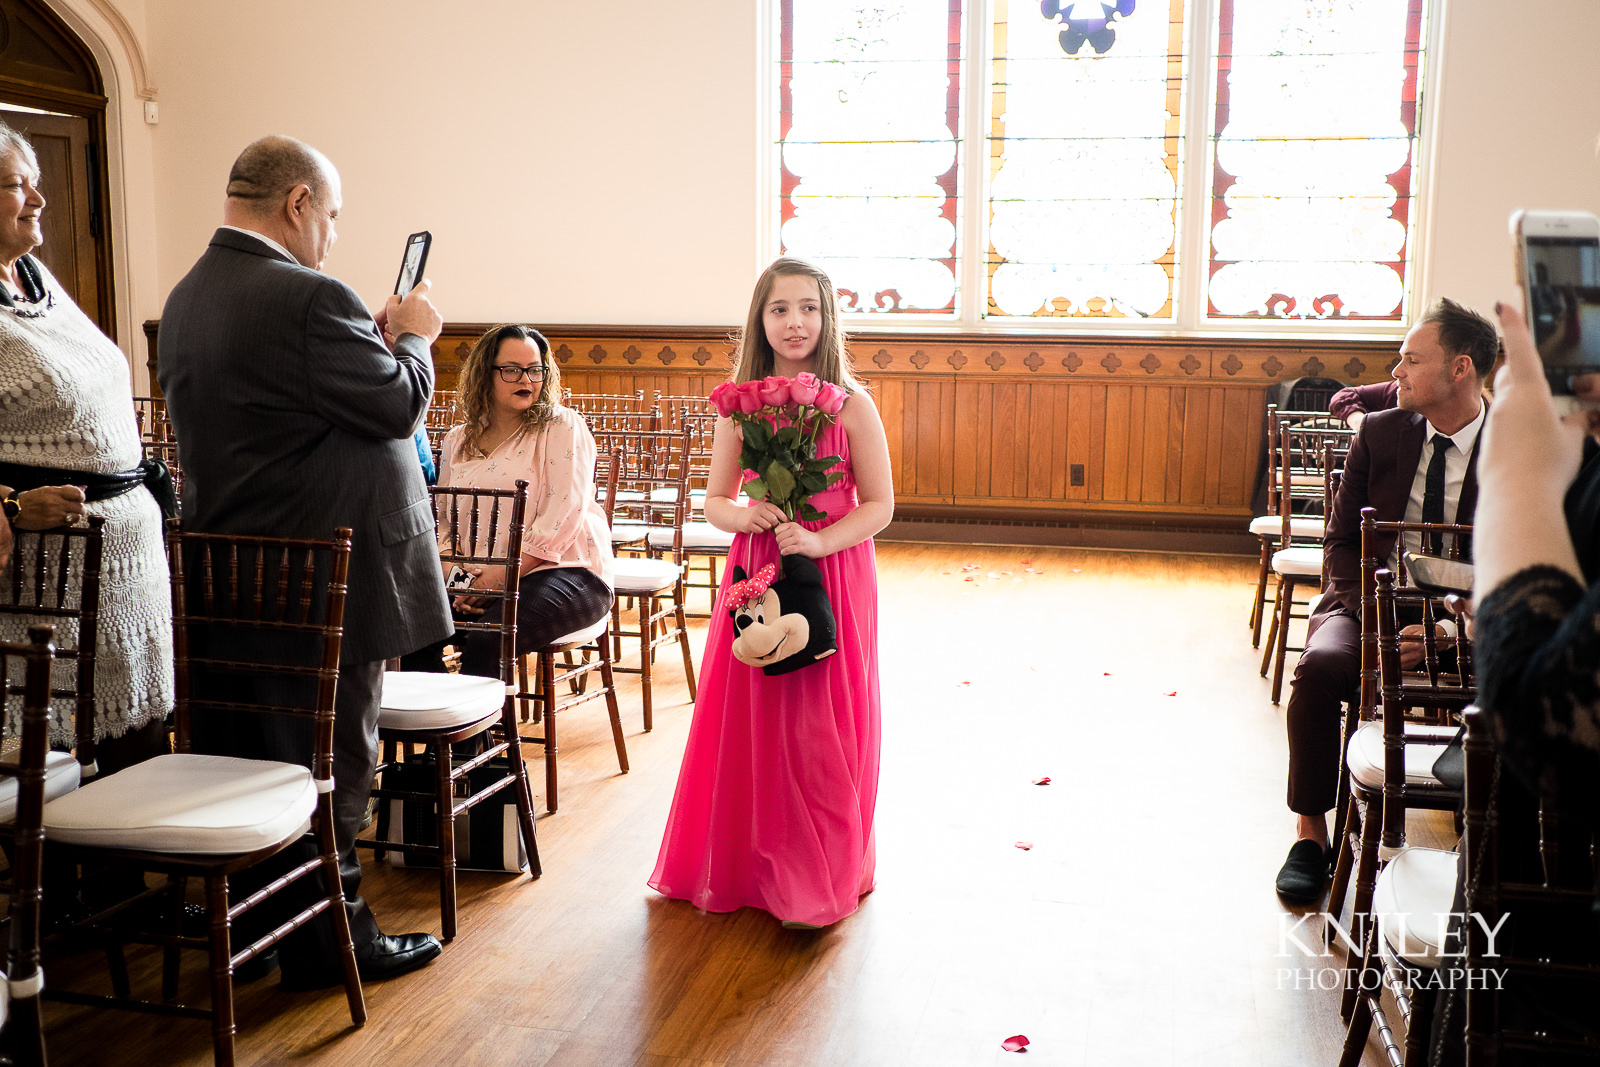 030 - Westminster Chapel - Rochester NY wedding photo - Kniley Photography.jpg